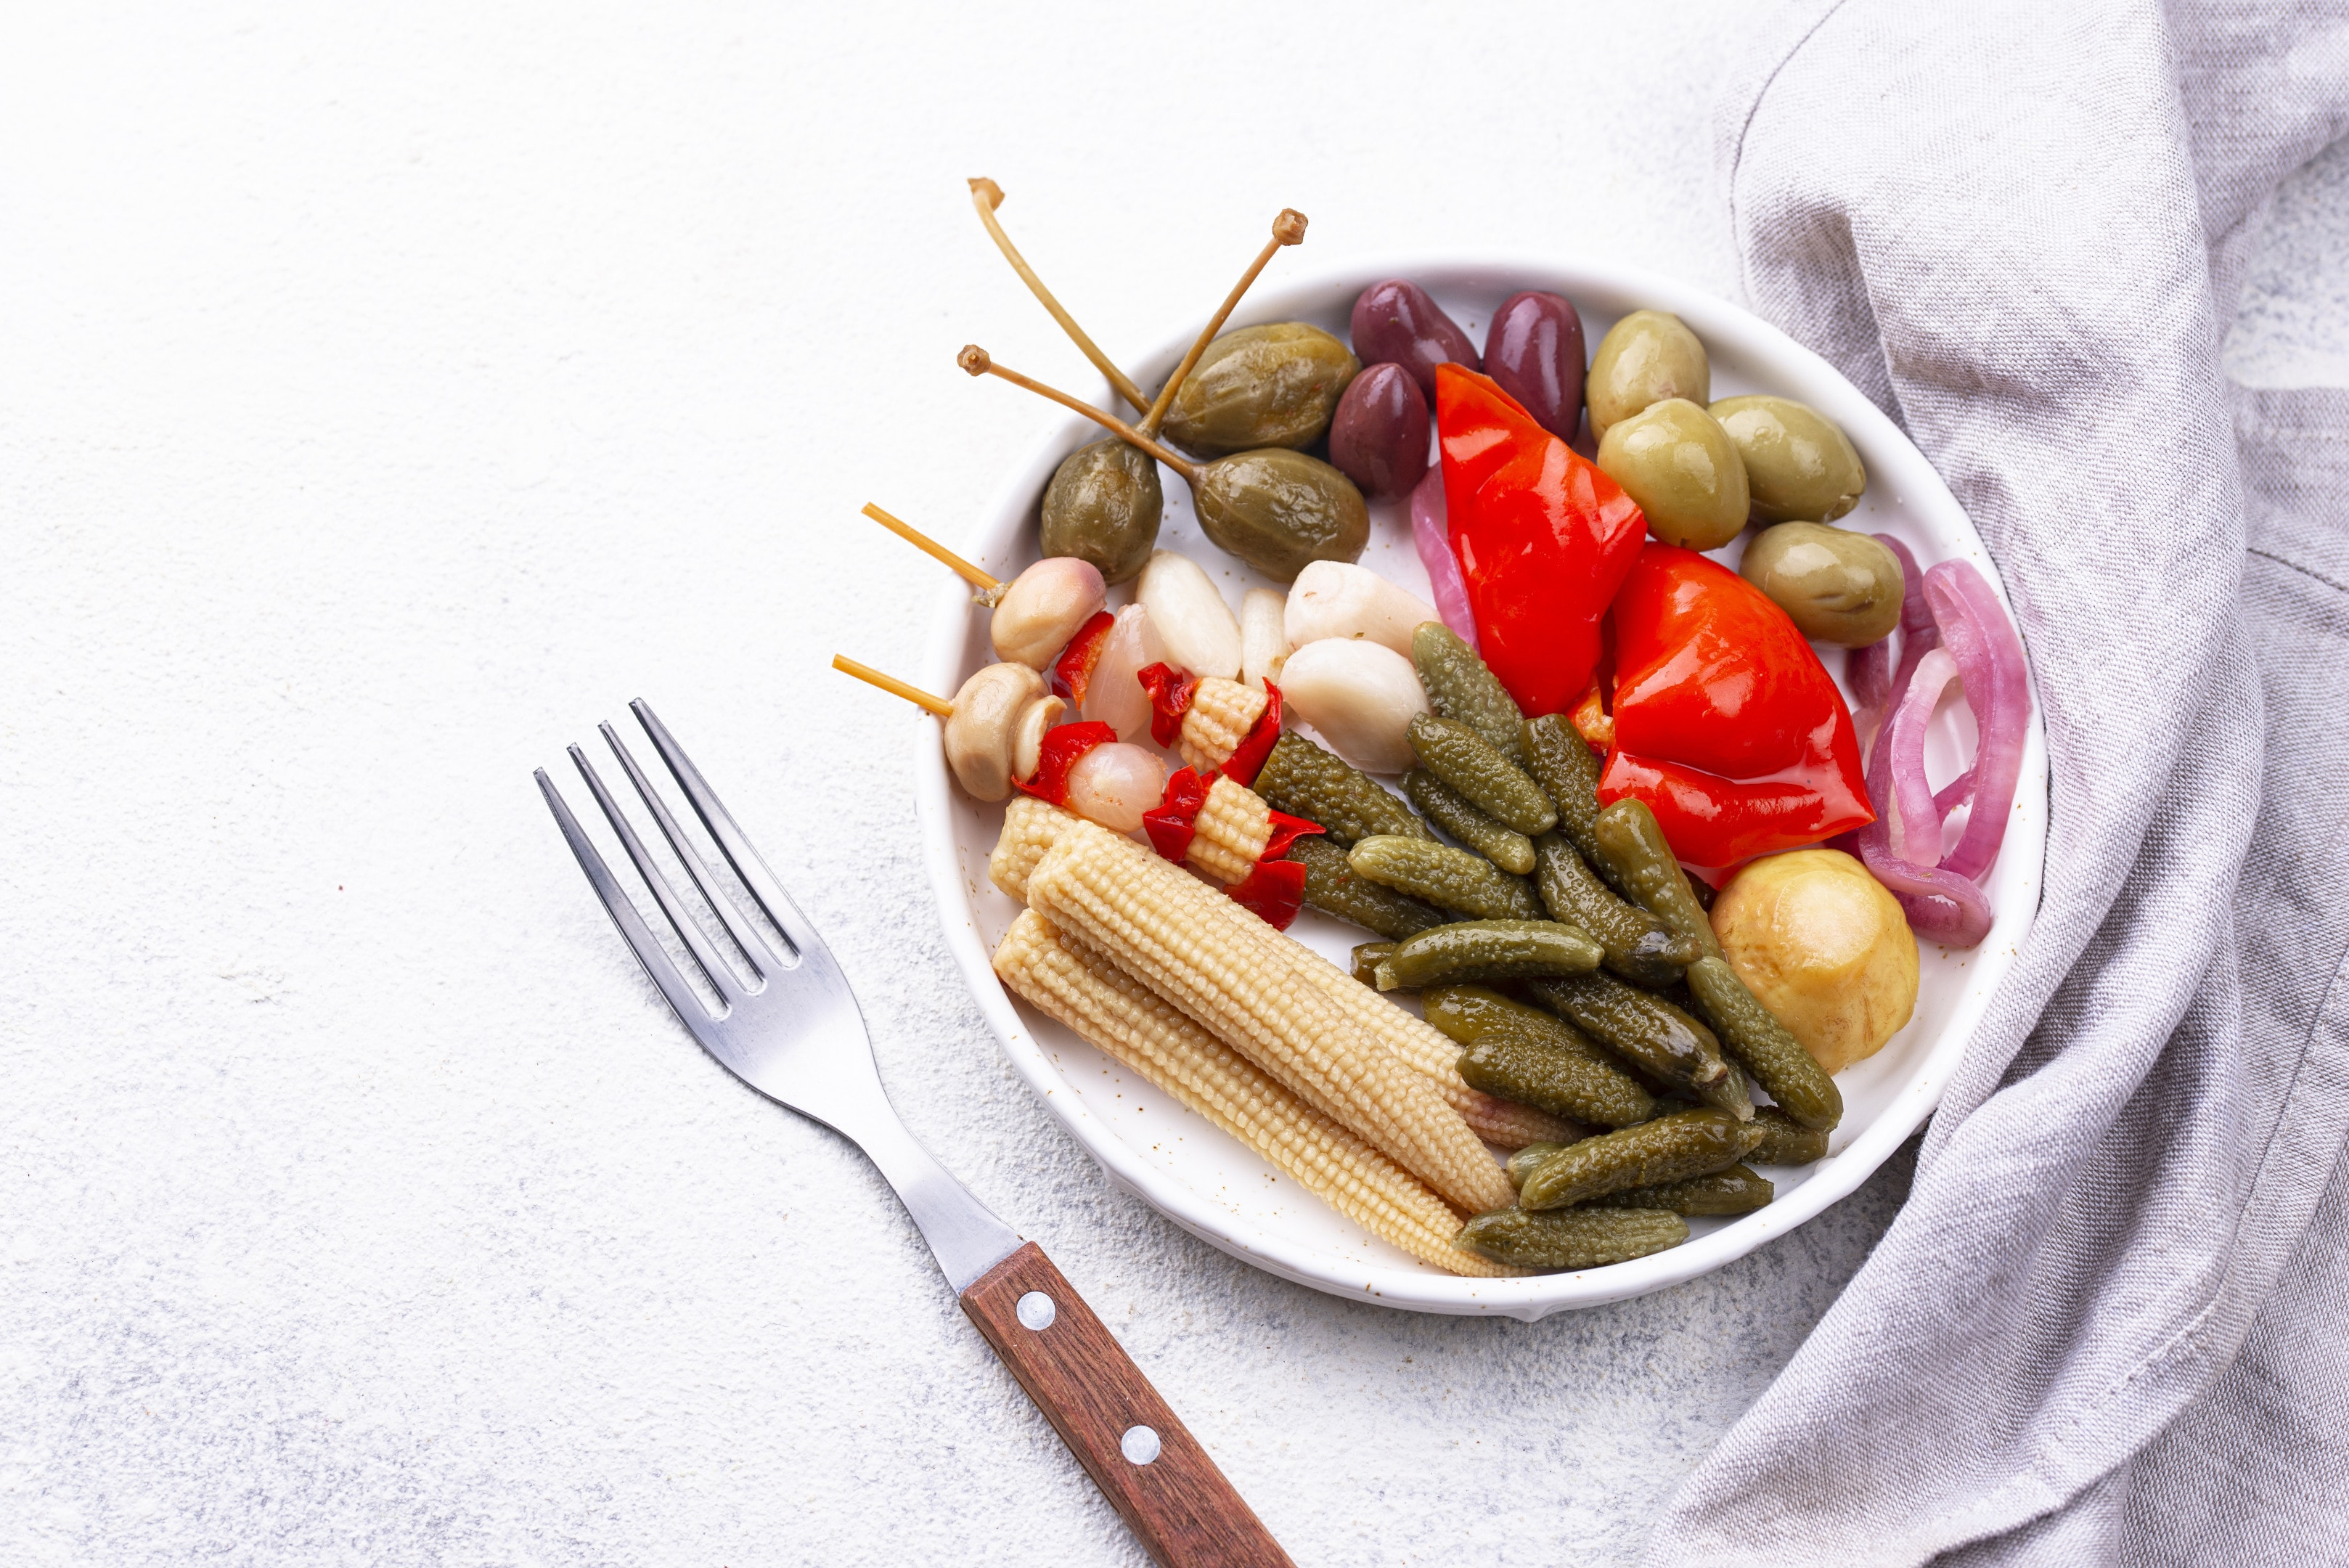 Fermented corn and other vegetables are glucosamine food sources